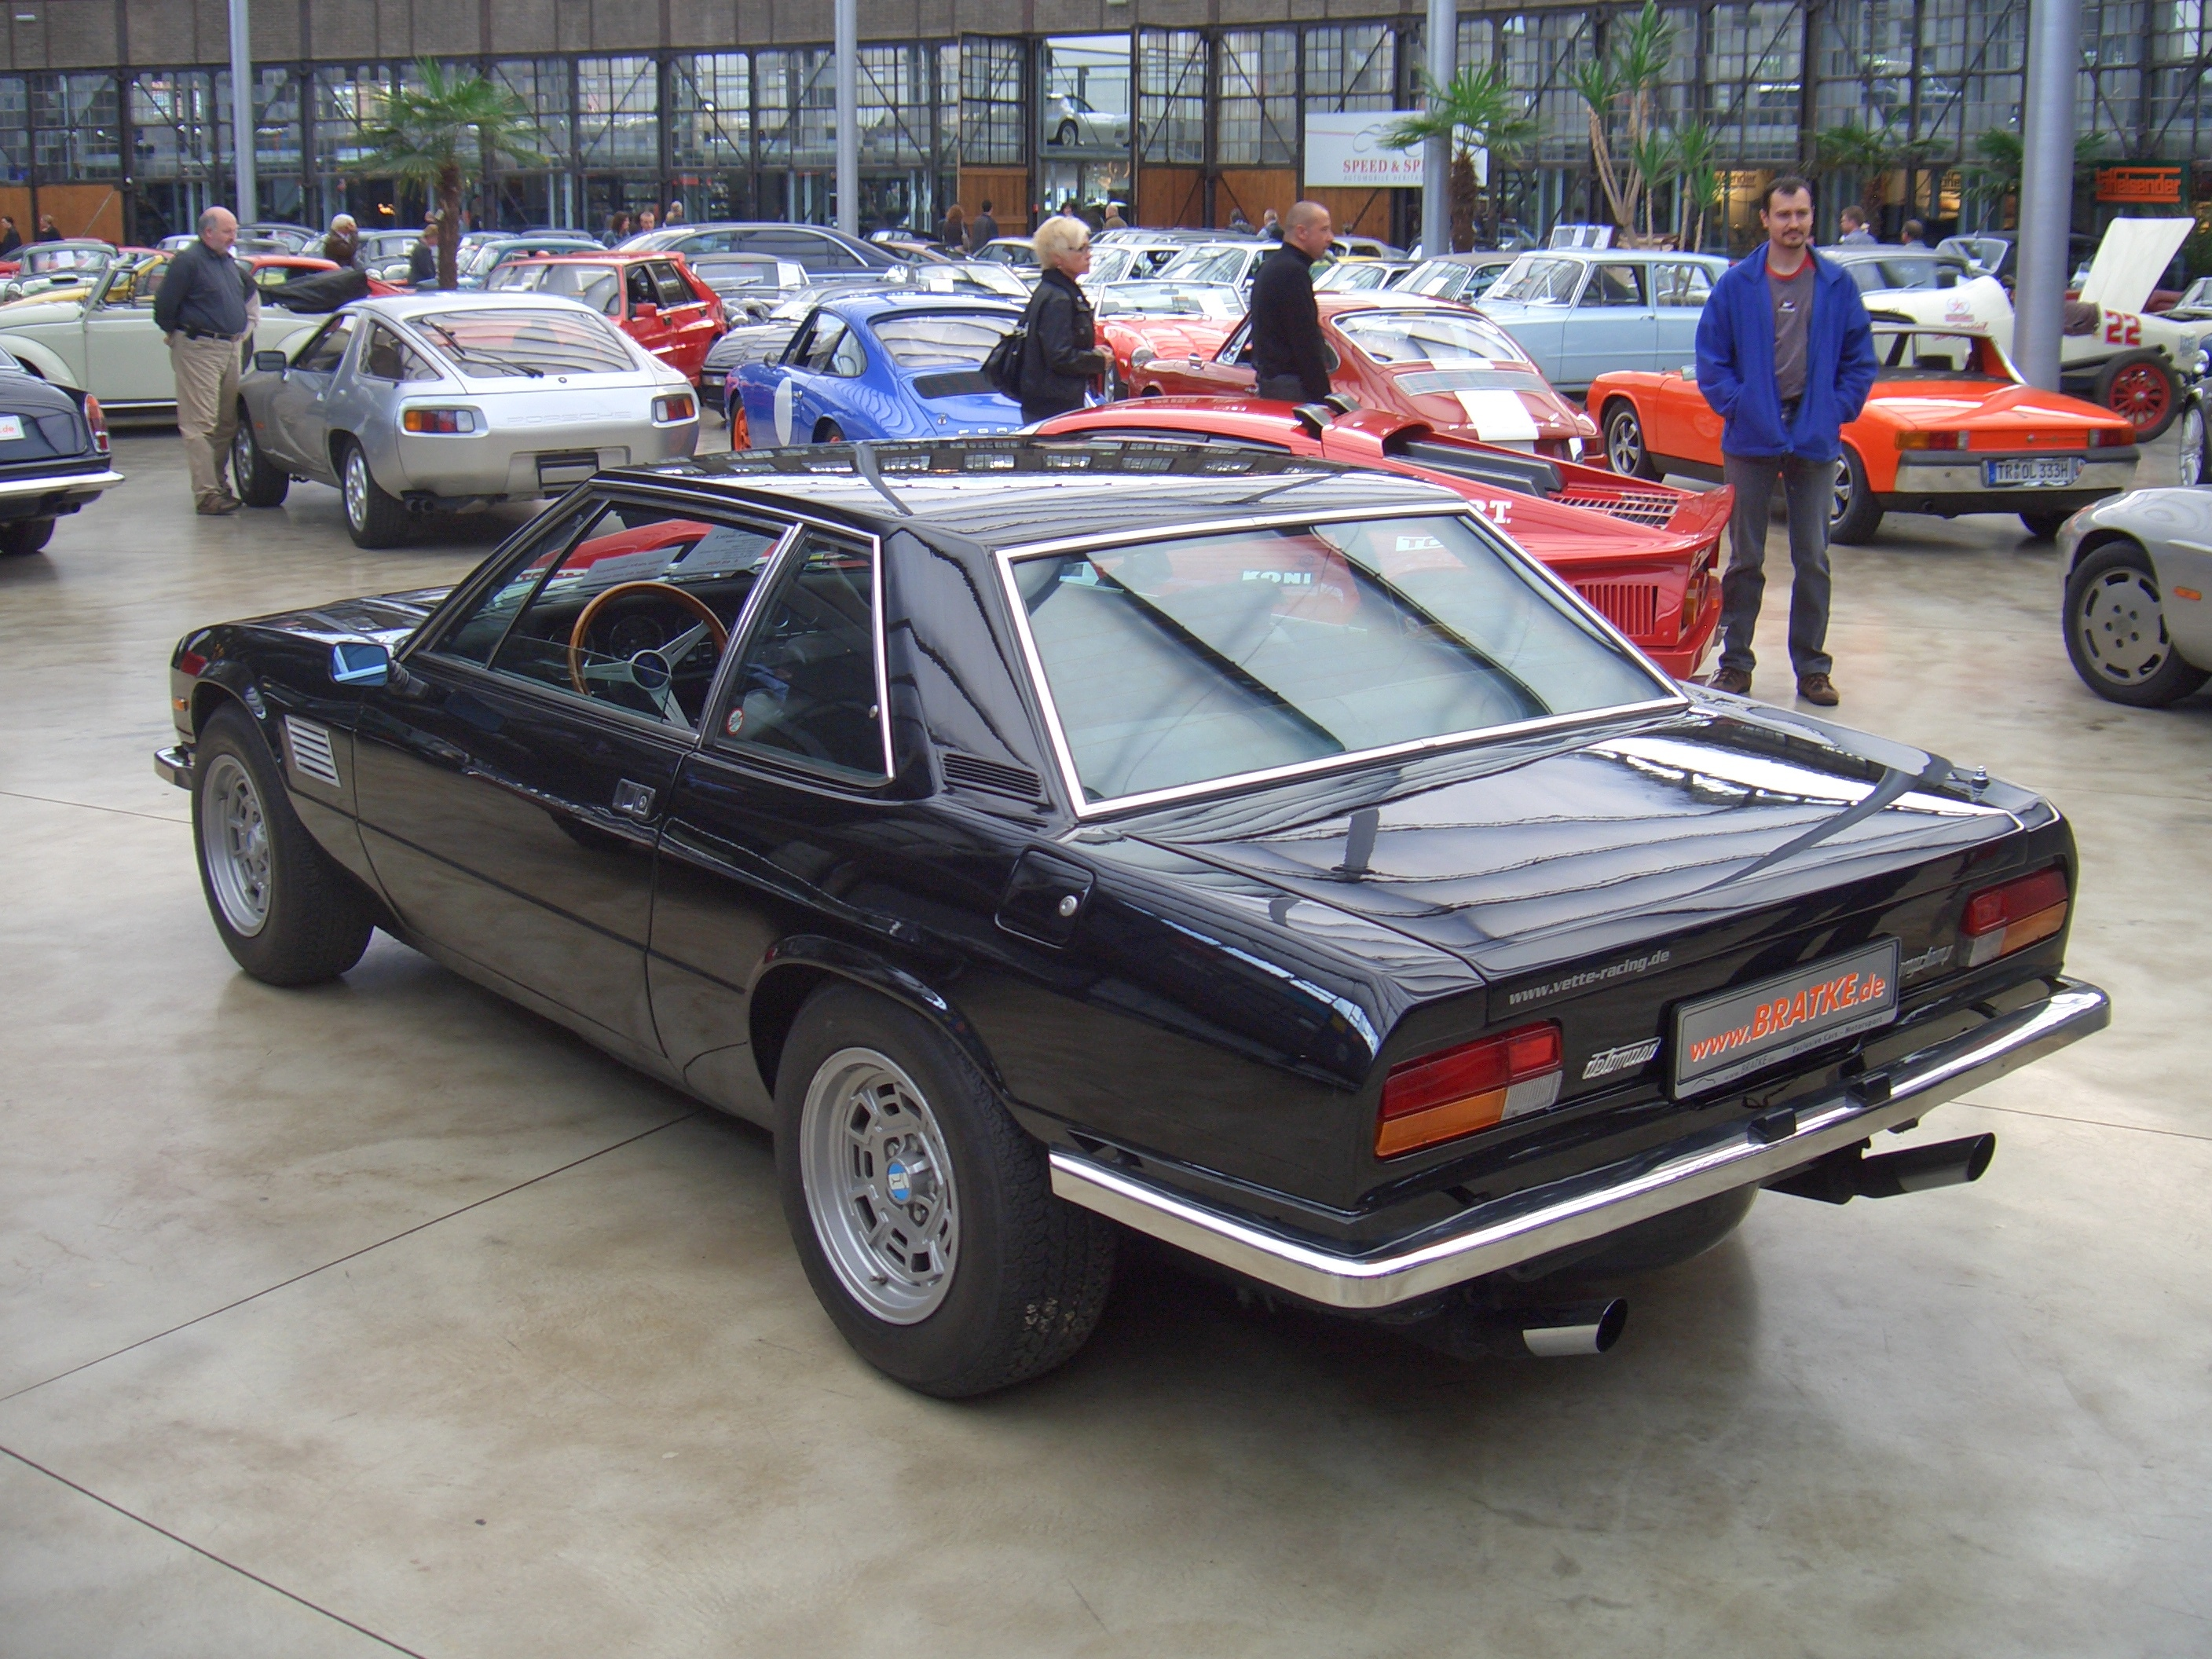 http://upload.wikimedia.org/wikipedia/commons/1/16/De_Tomaso_Longchamp_Gen1_000_1973-1979_backleft_2011-04-17_A.jpg